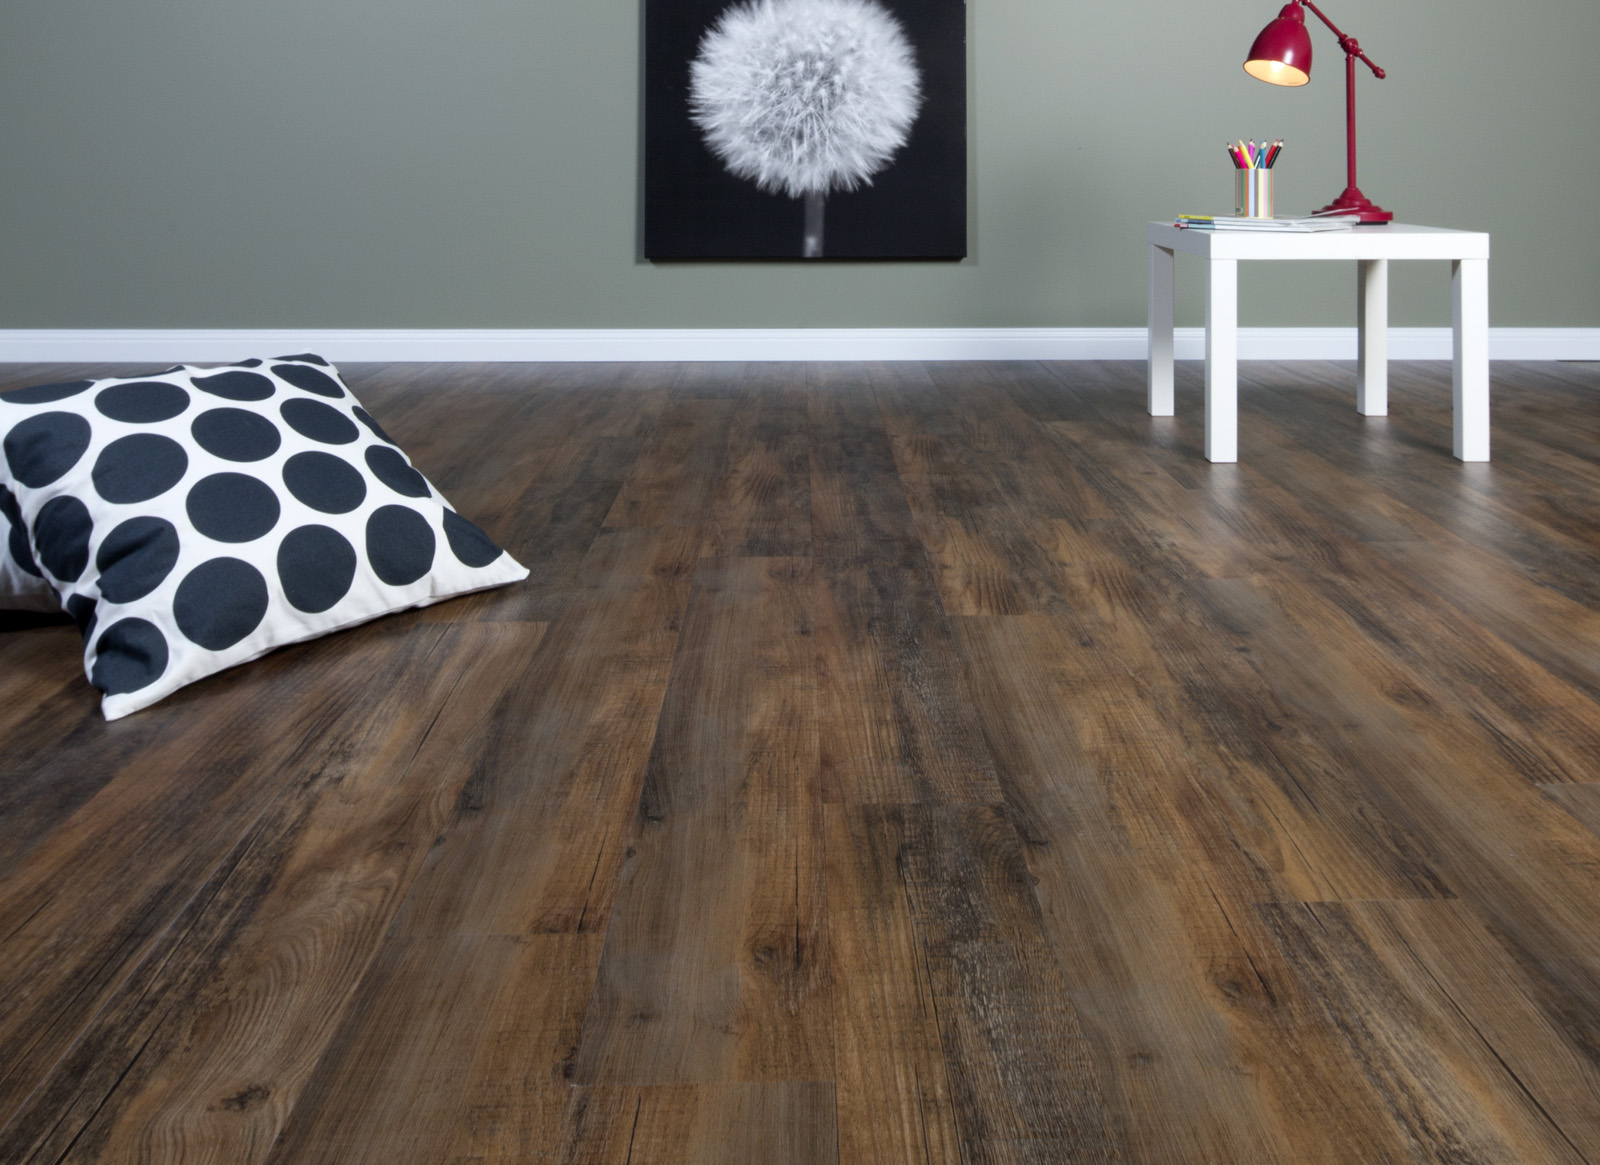 Vinyl flooring newcastle image 7